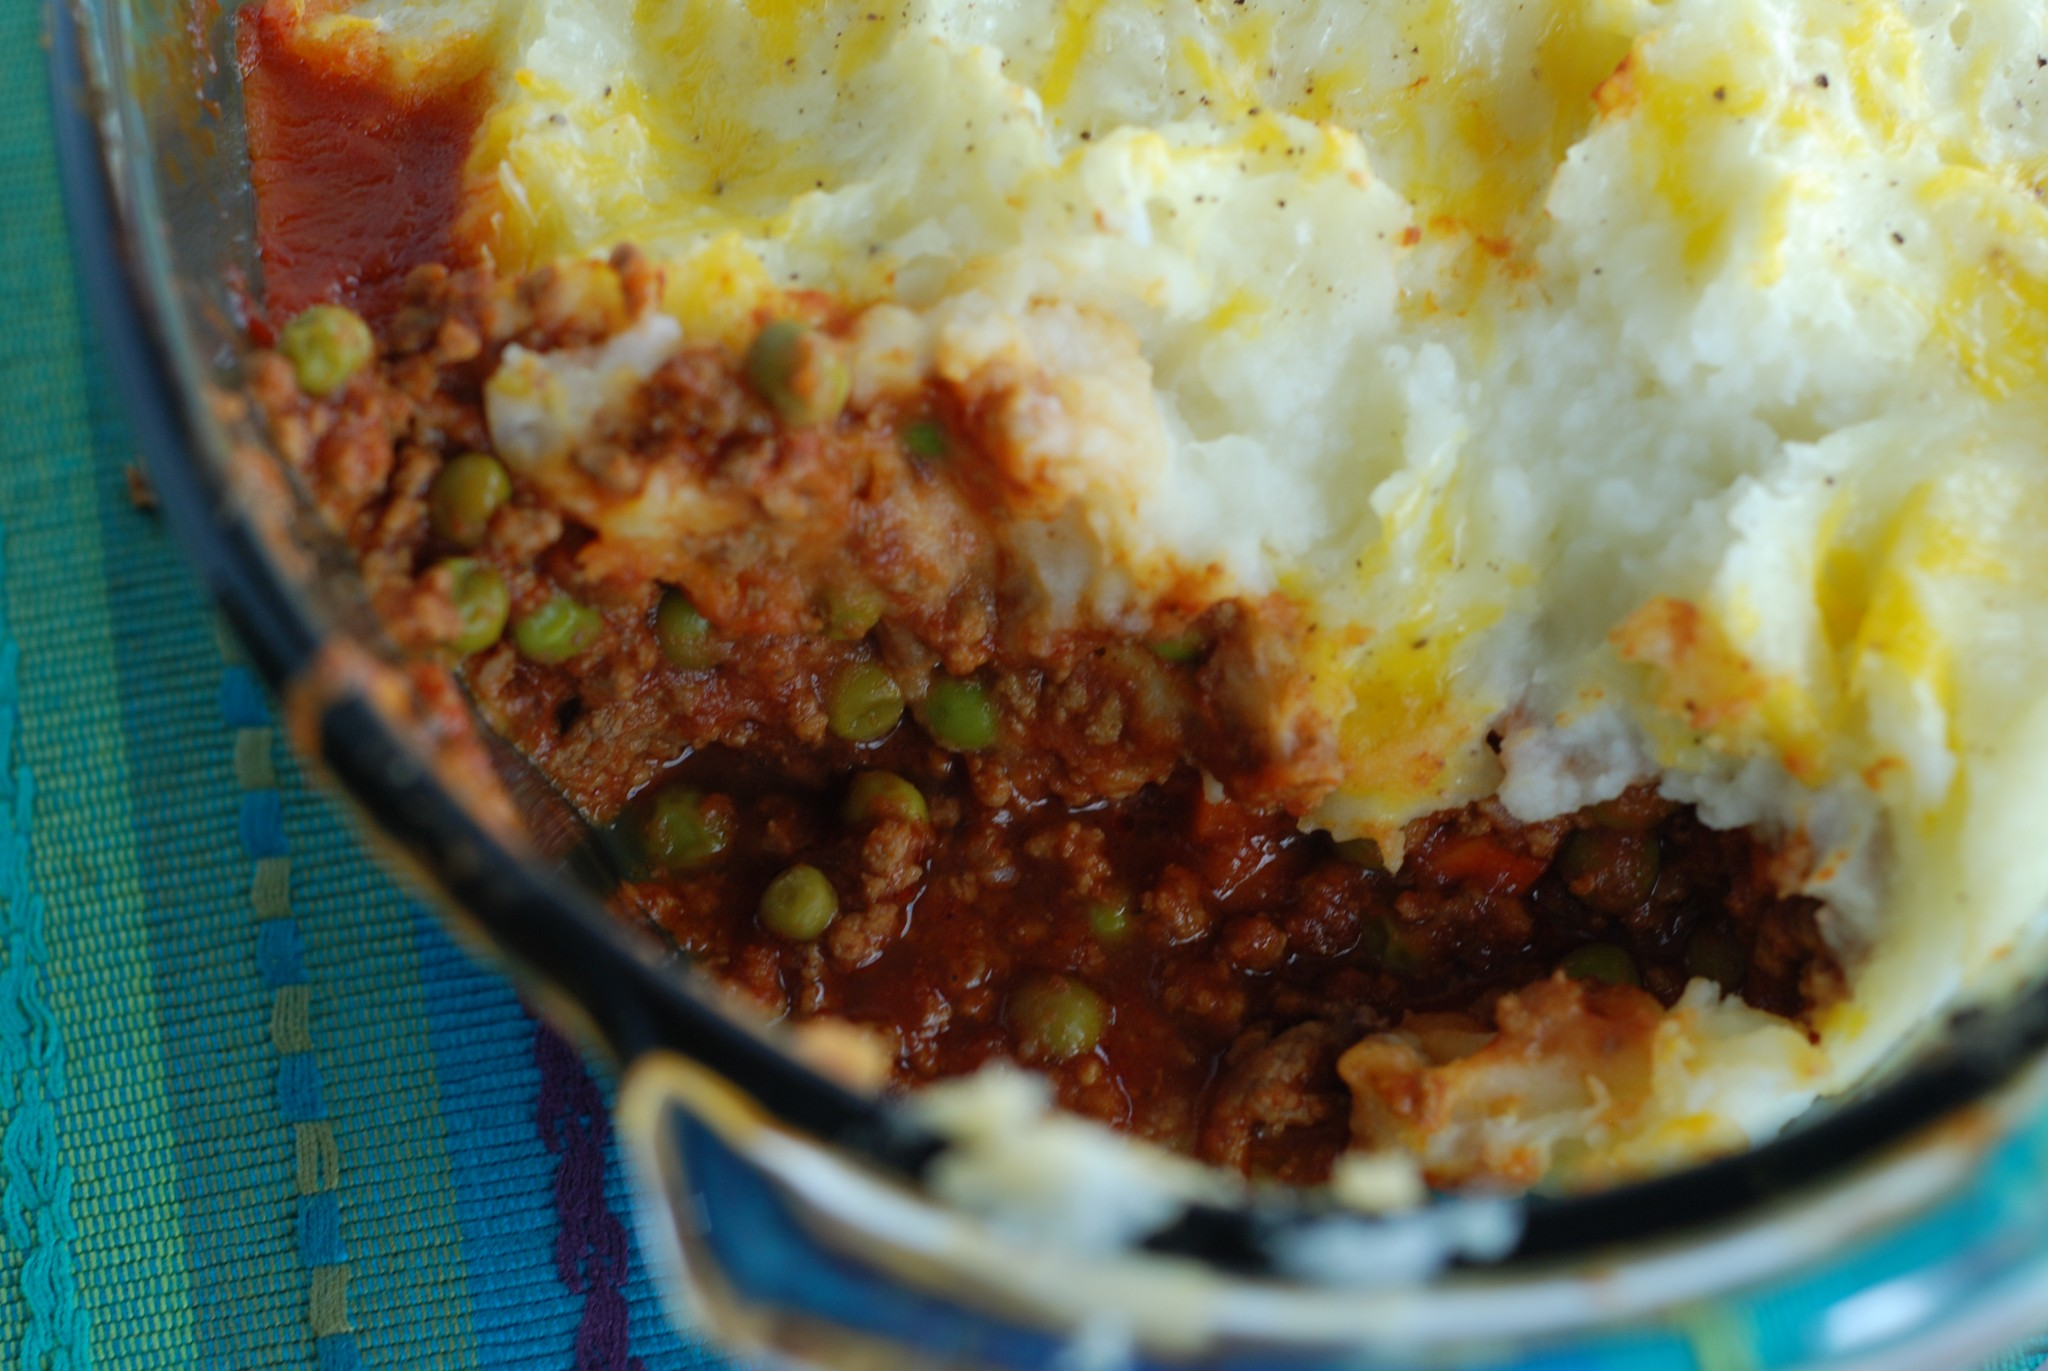 Best Shepherd's Pie - you won't believe this rich dish is lightened up with cauliflower and cottage cheese!